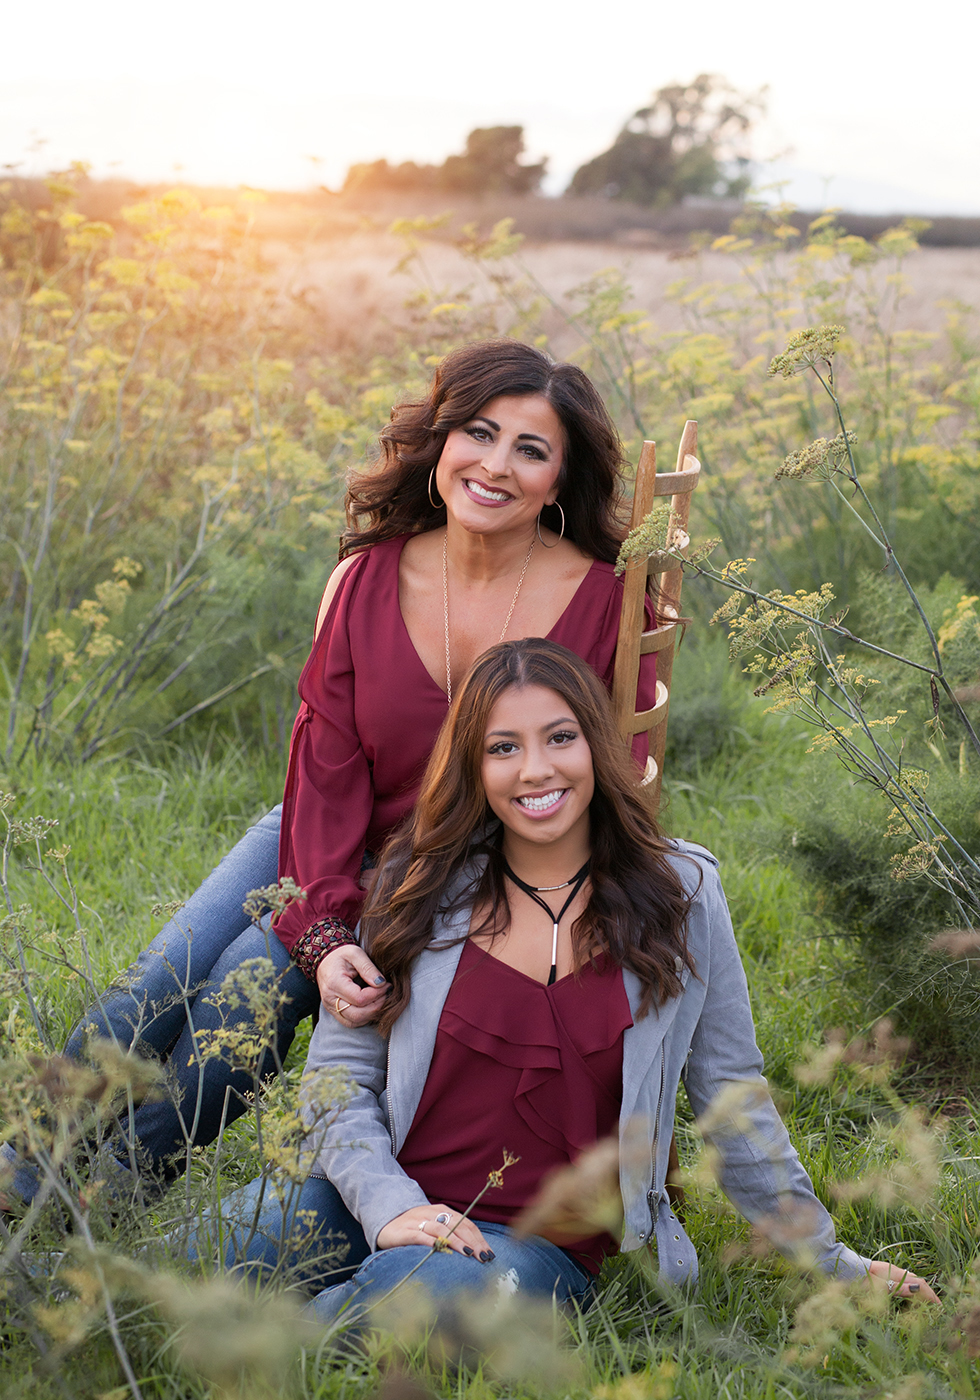 IMG_0313_flowers_family_portrait_mother_daughter_portrait_San_Ramon_Cal_high_family_gretchen-adams-photography.jpg